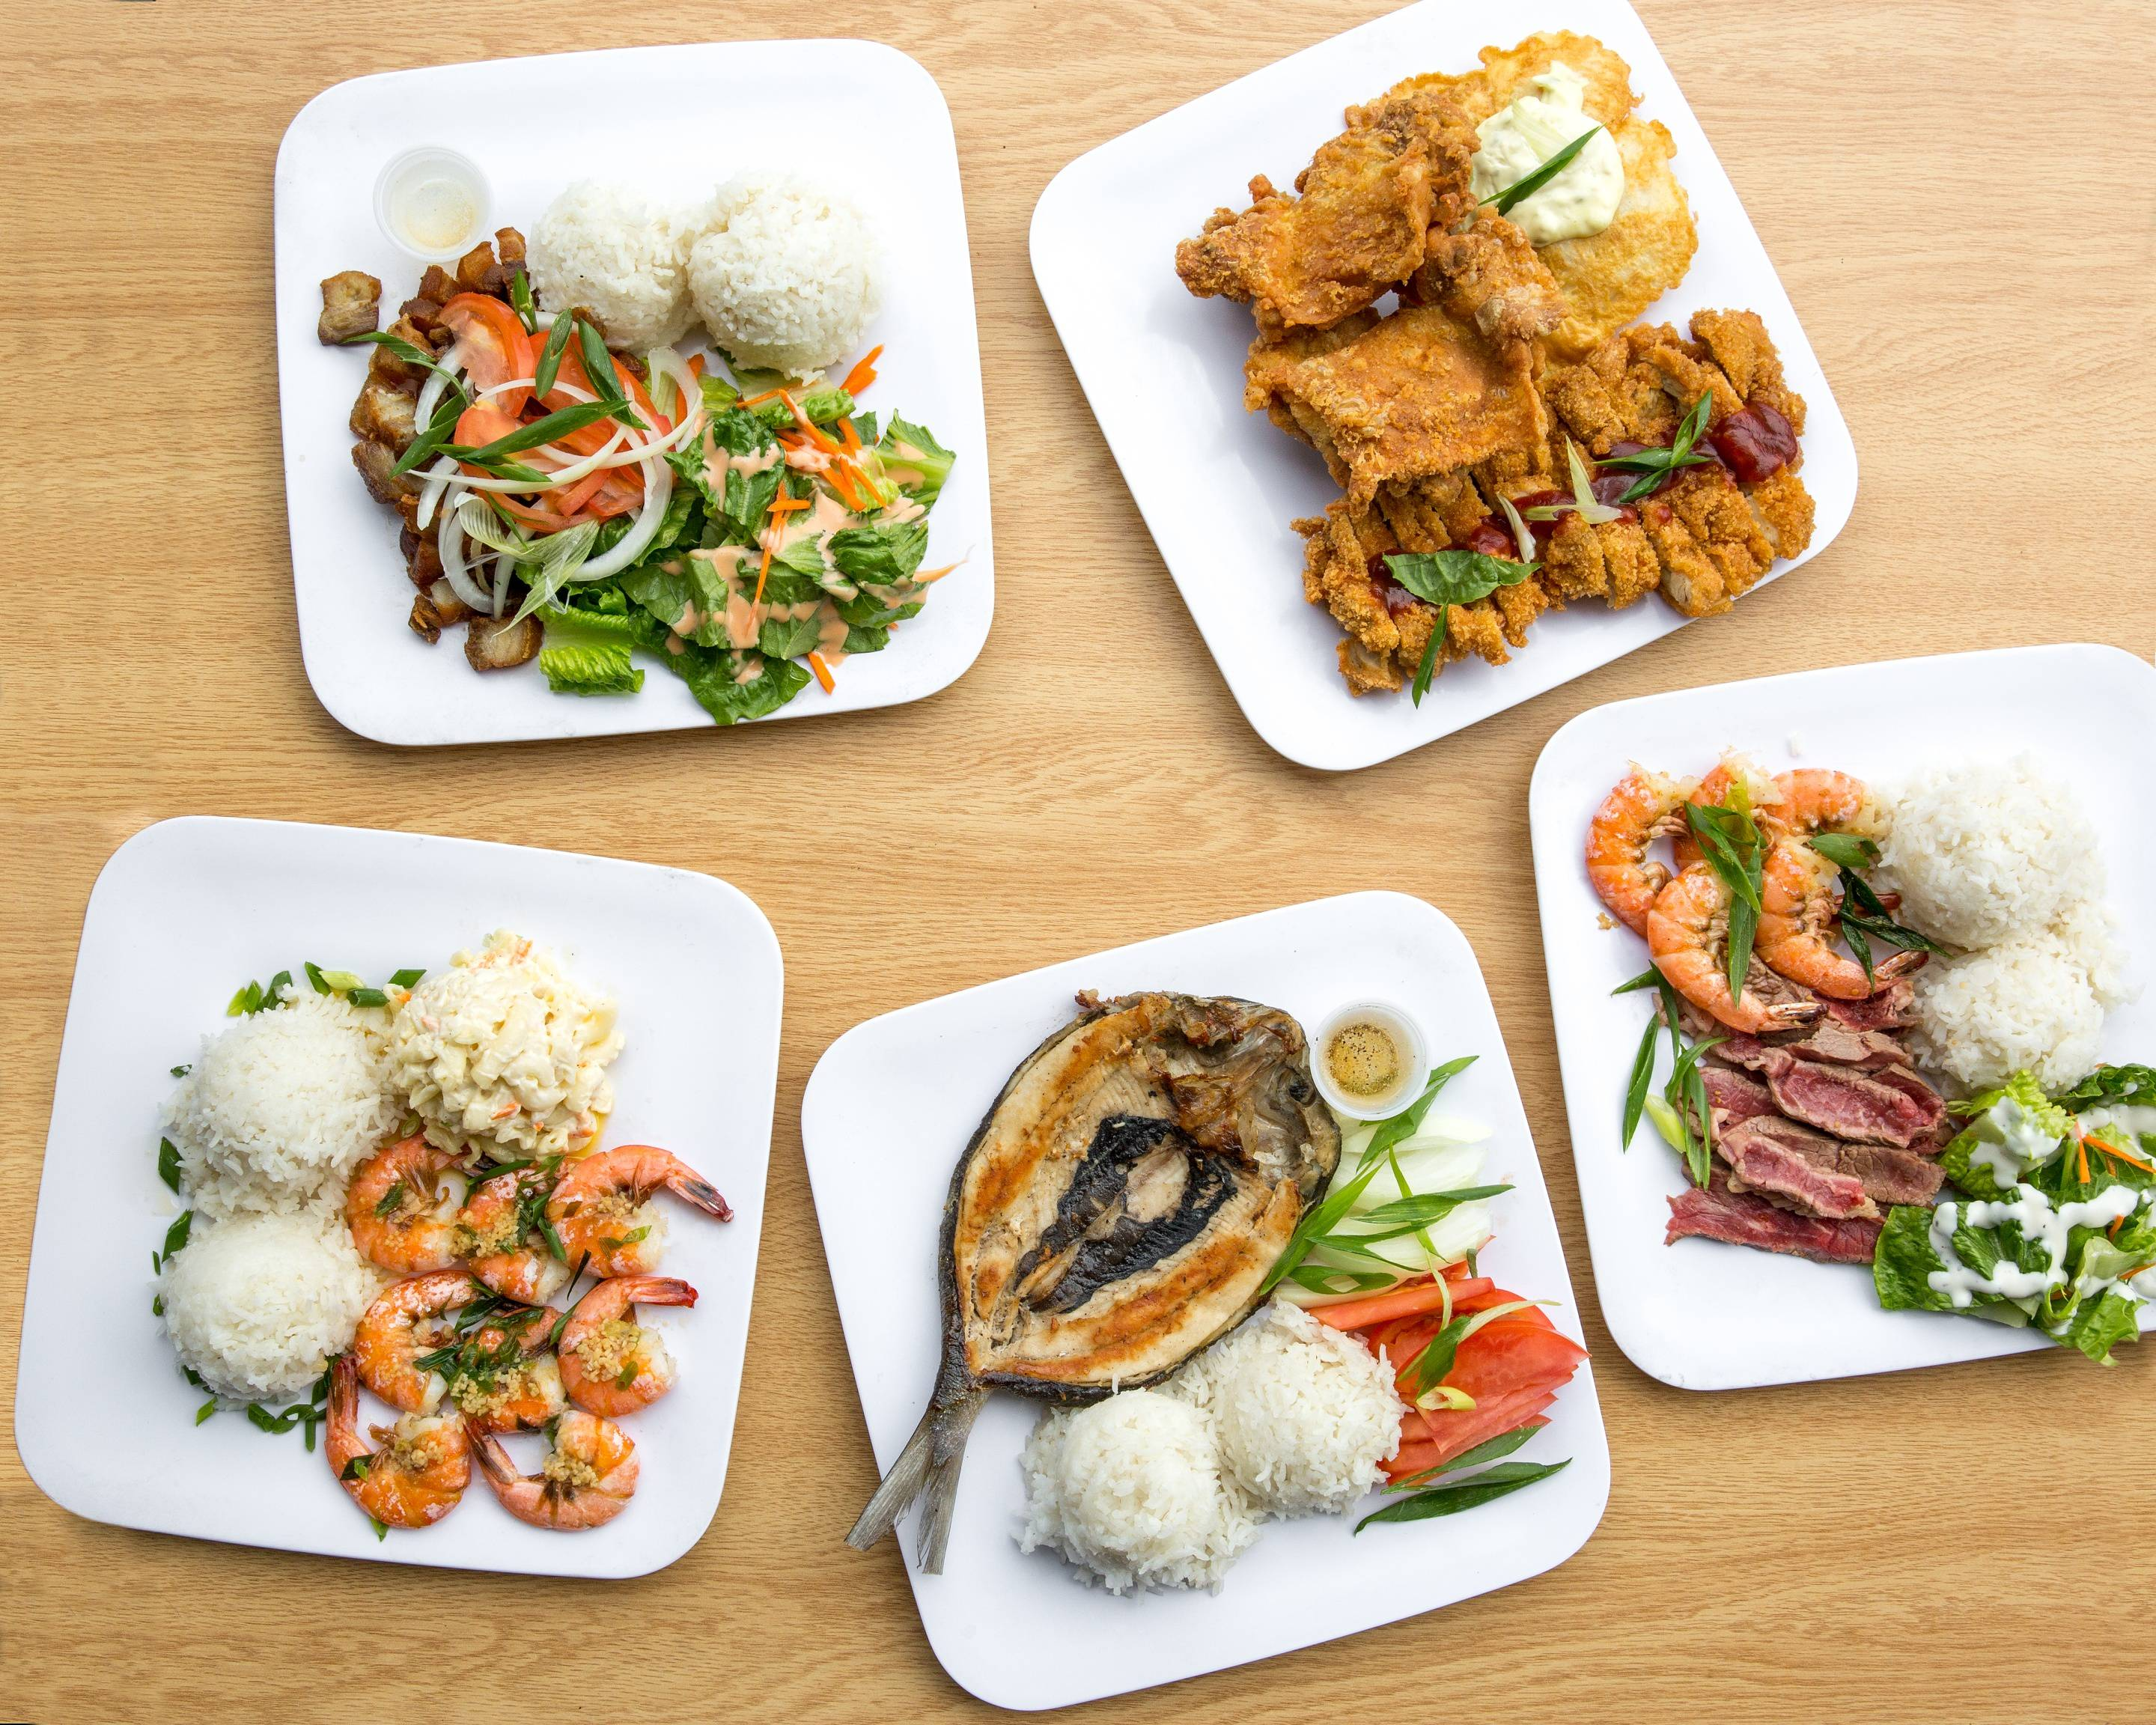 Ann S Kitchen Express Delivery Honolulu Uber Eats